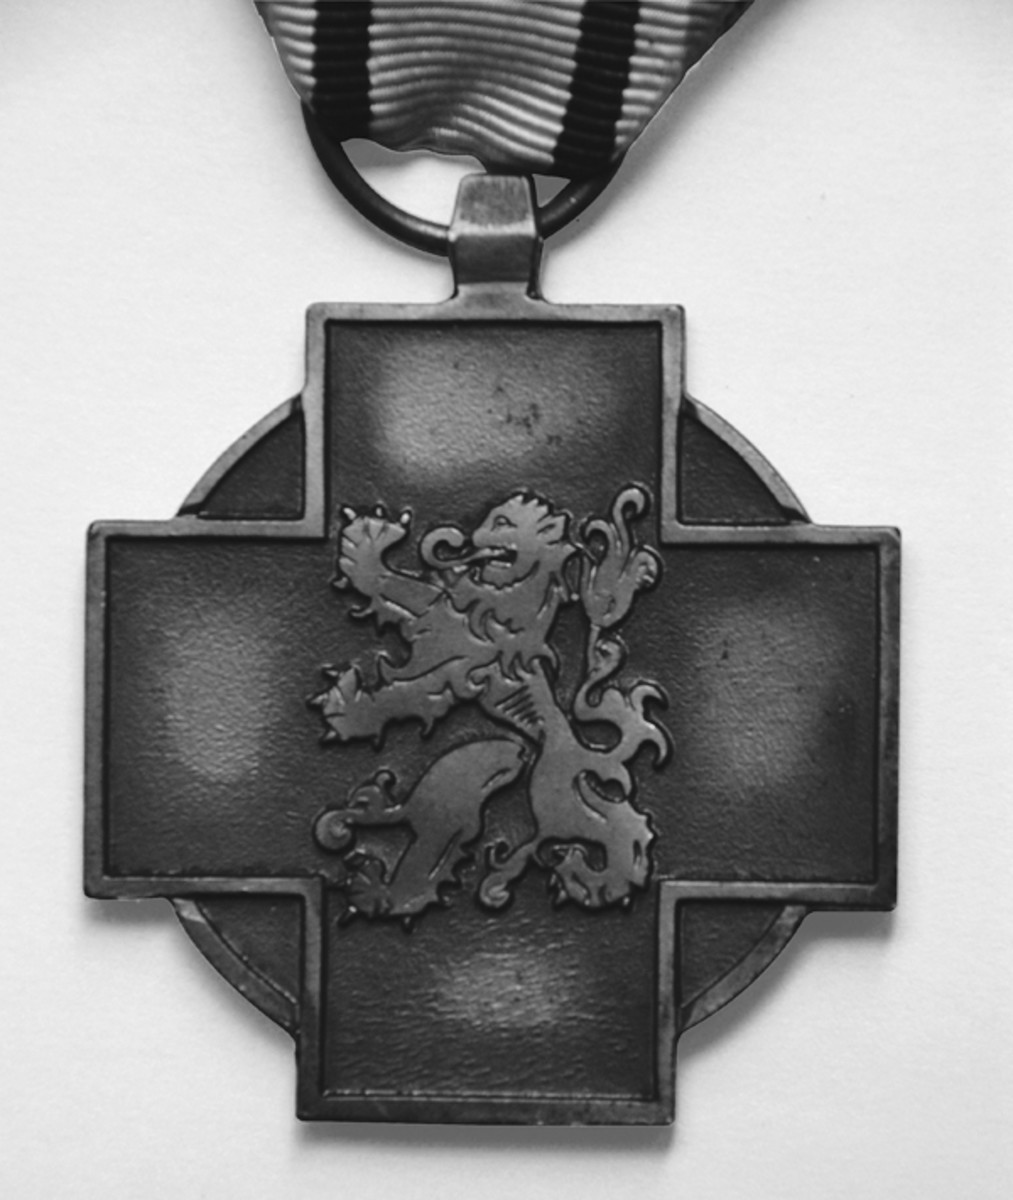 Obverse of the Military Combatant's Medal with rampant Belgic lion.